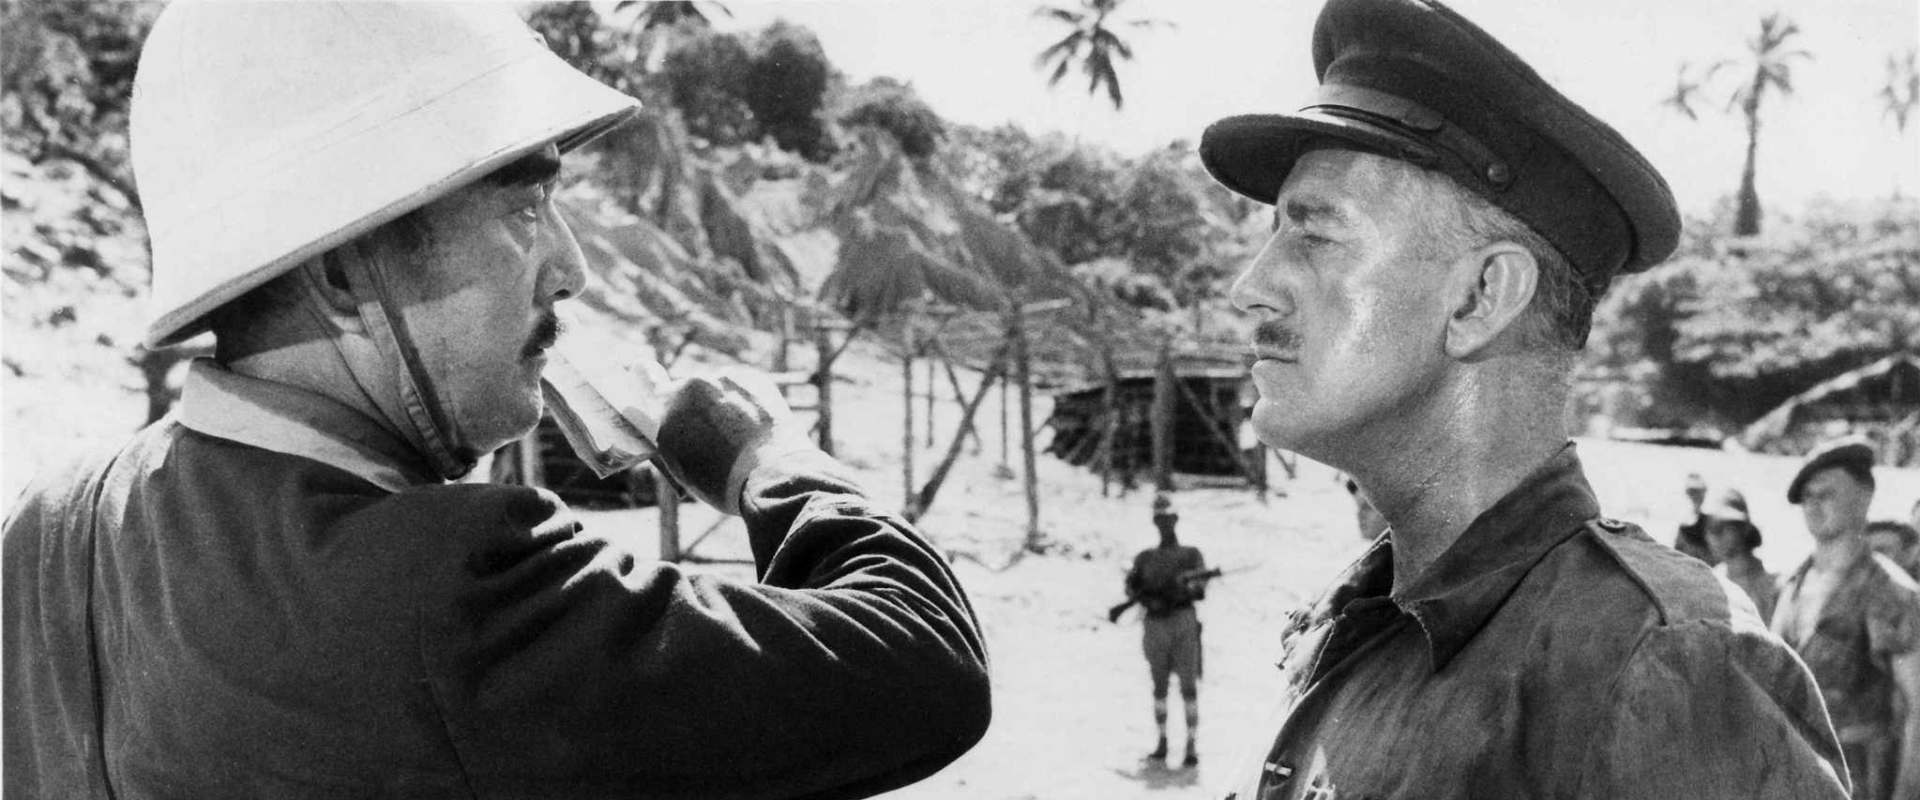 The Bridge on the River Kwai background 1